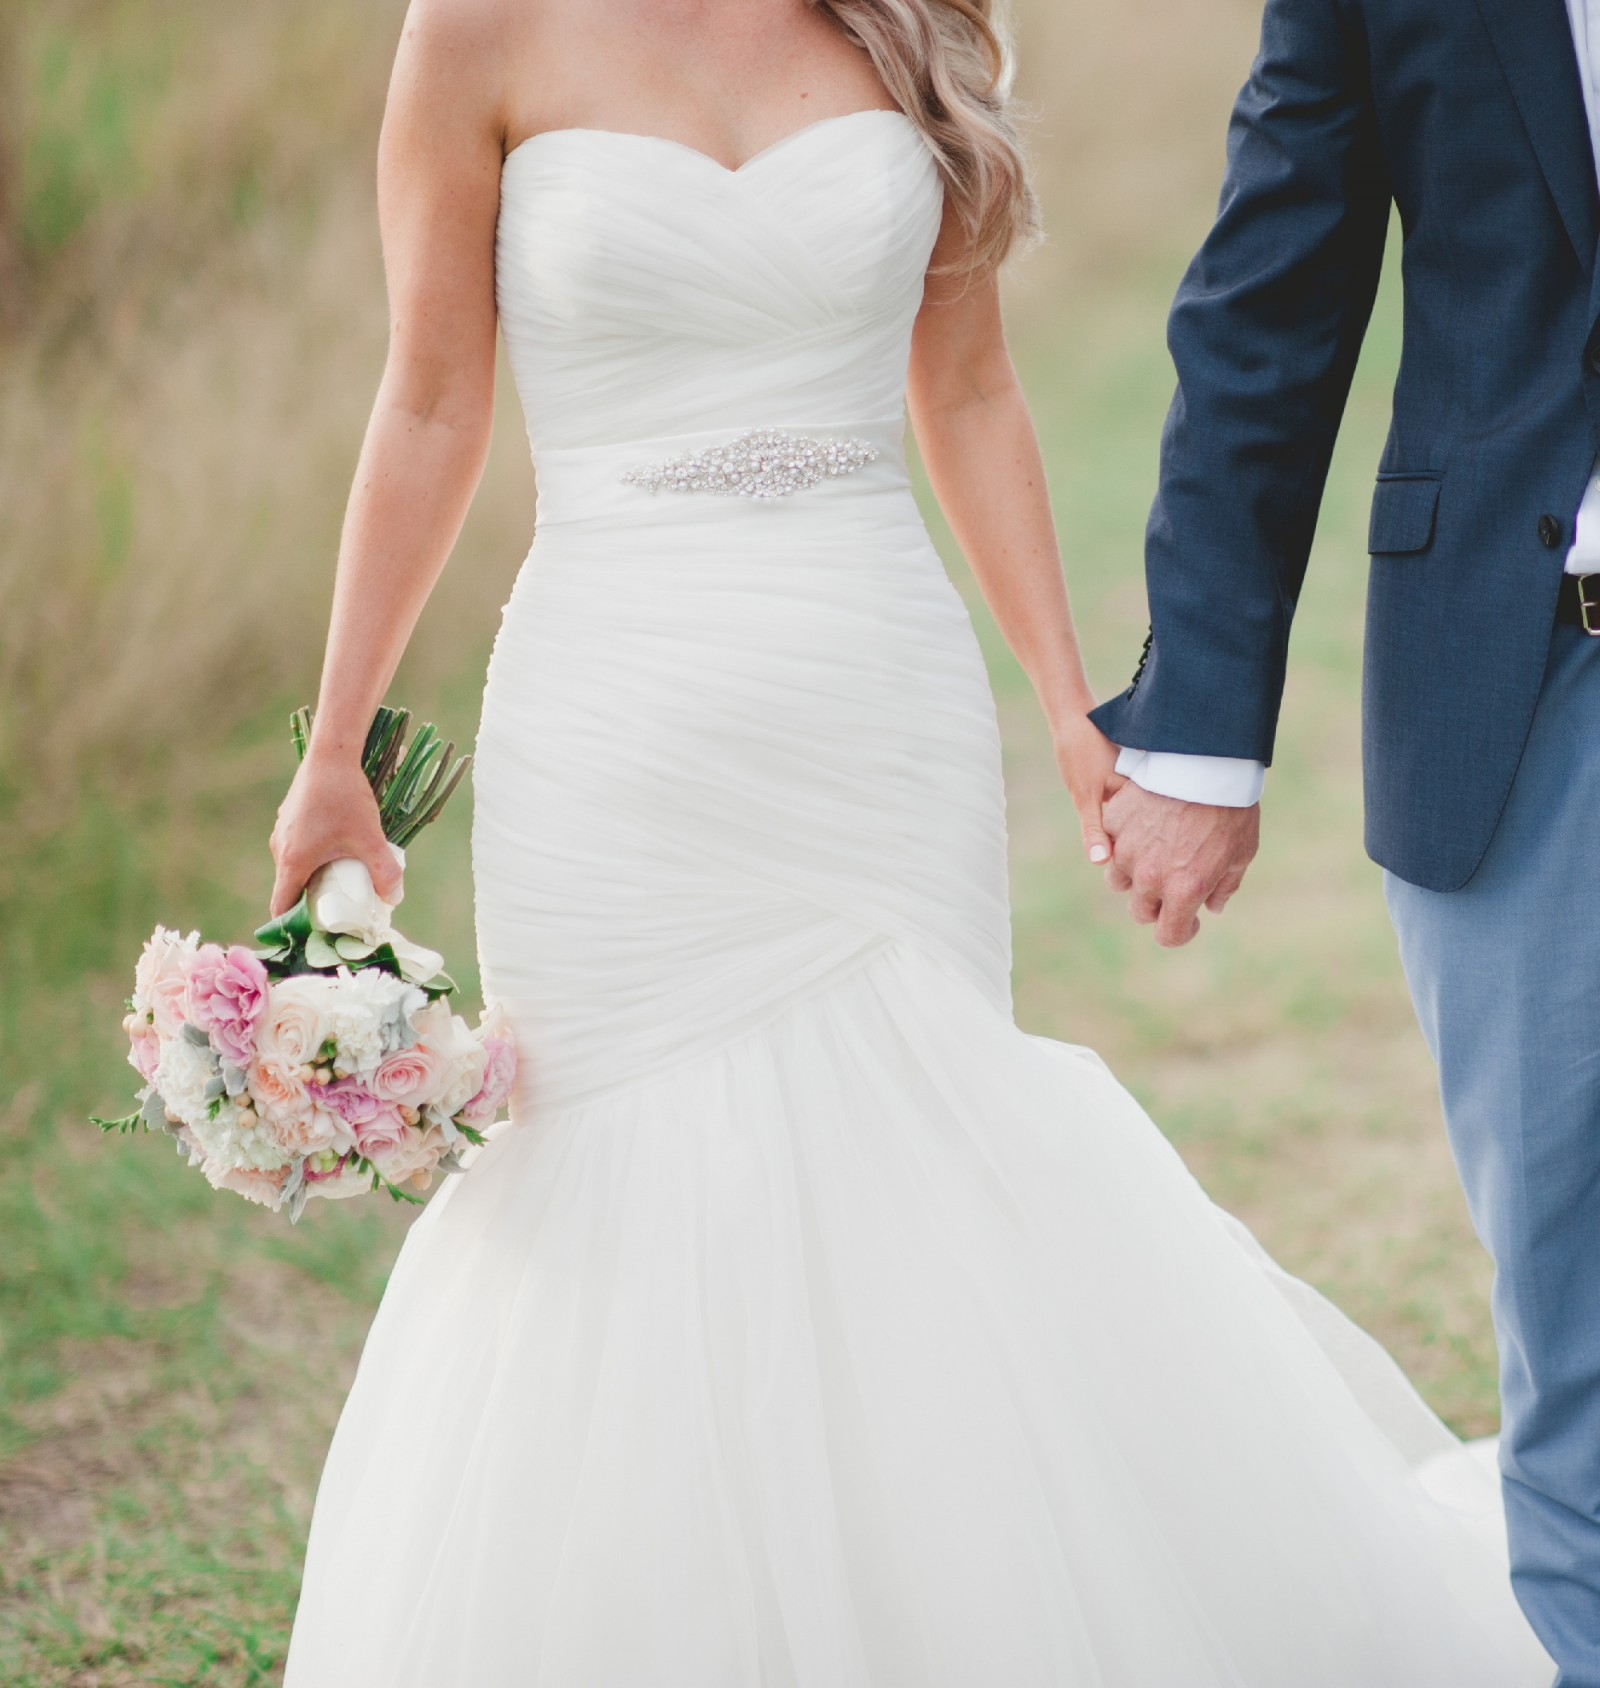 Morilee second hand wedding dress on sale 73 off for Second hand wedding dresses for sale